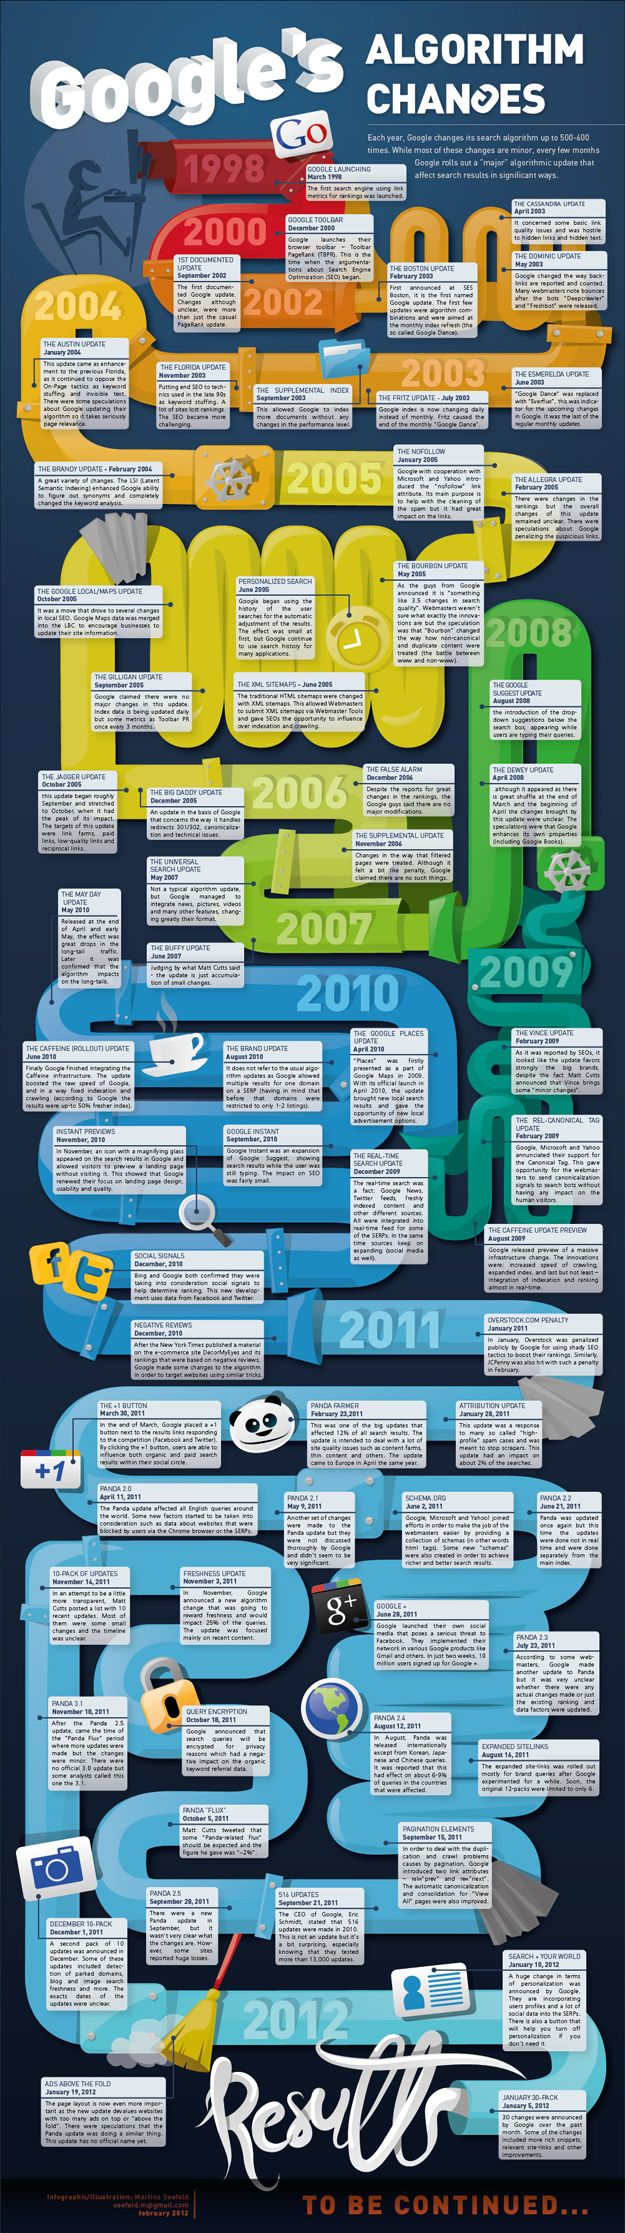 #Google's algorithm changes [infographic] - Holy Kaw! apologies if this is a dupe